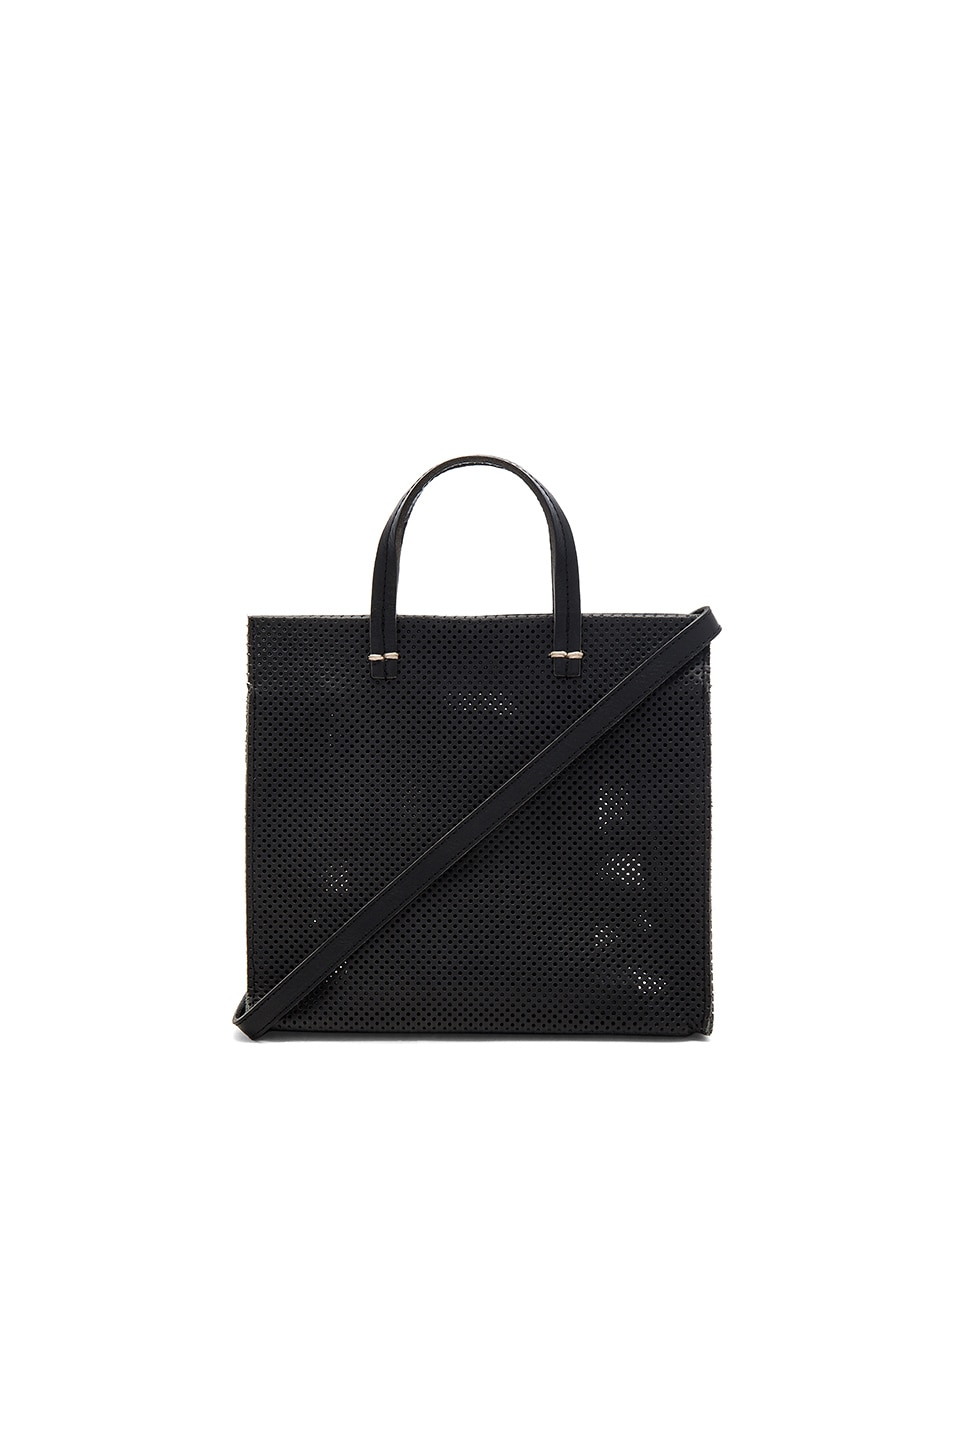 Clare V. Petit Simple Tote Perf in Black